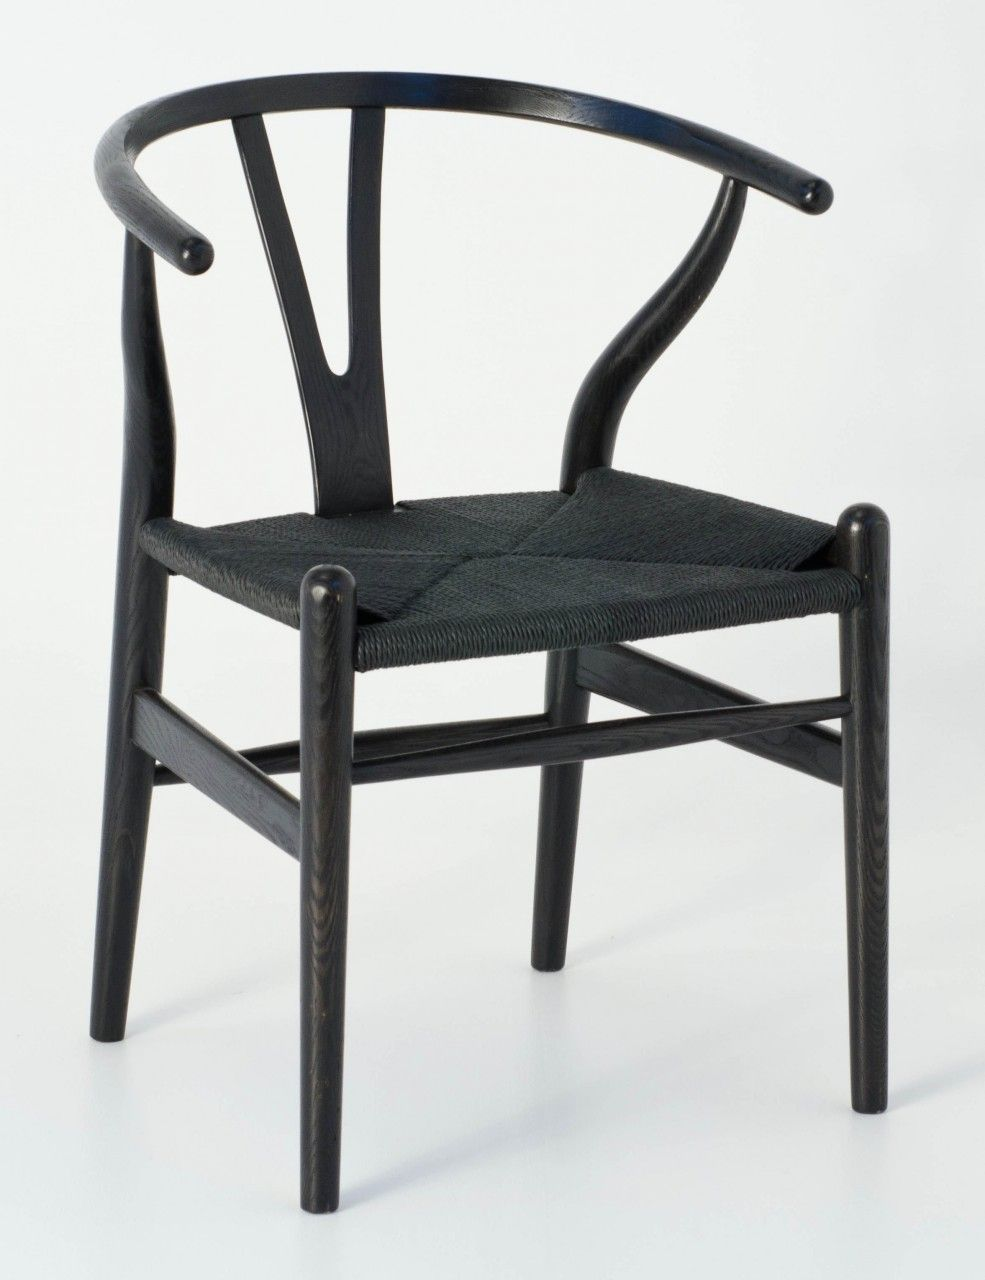 Milano Republic Furniture   Replica Hans Wegner Wishbone Chair   Black  Frame (grain Visible) Black Seat   Ash Timber, ...